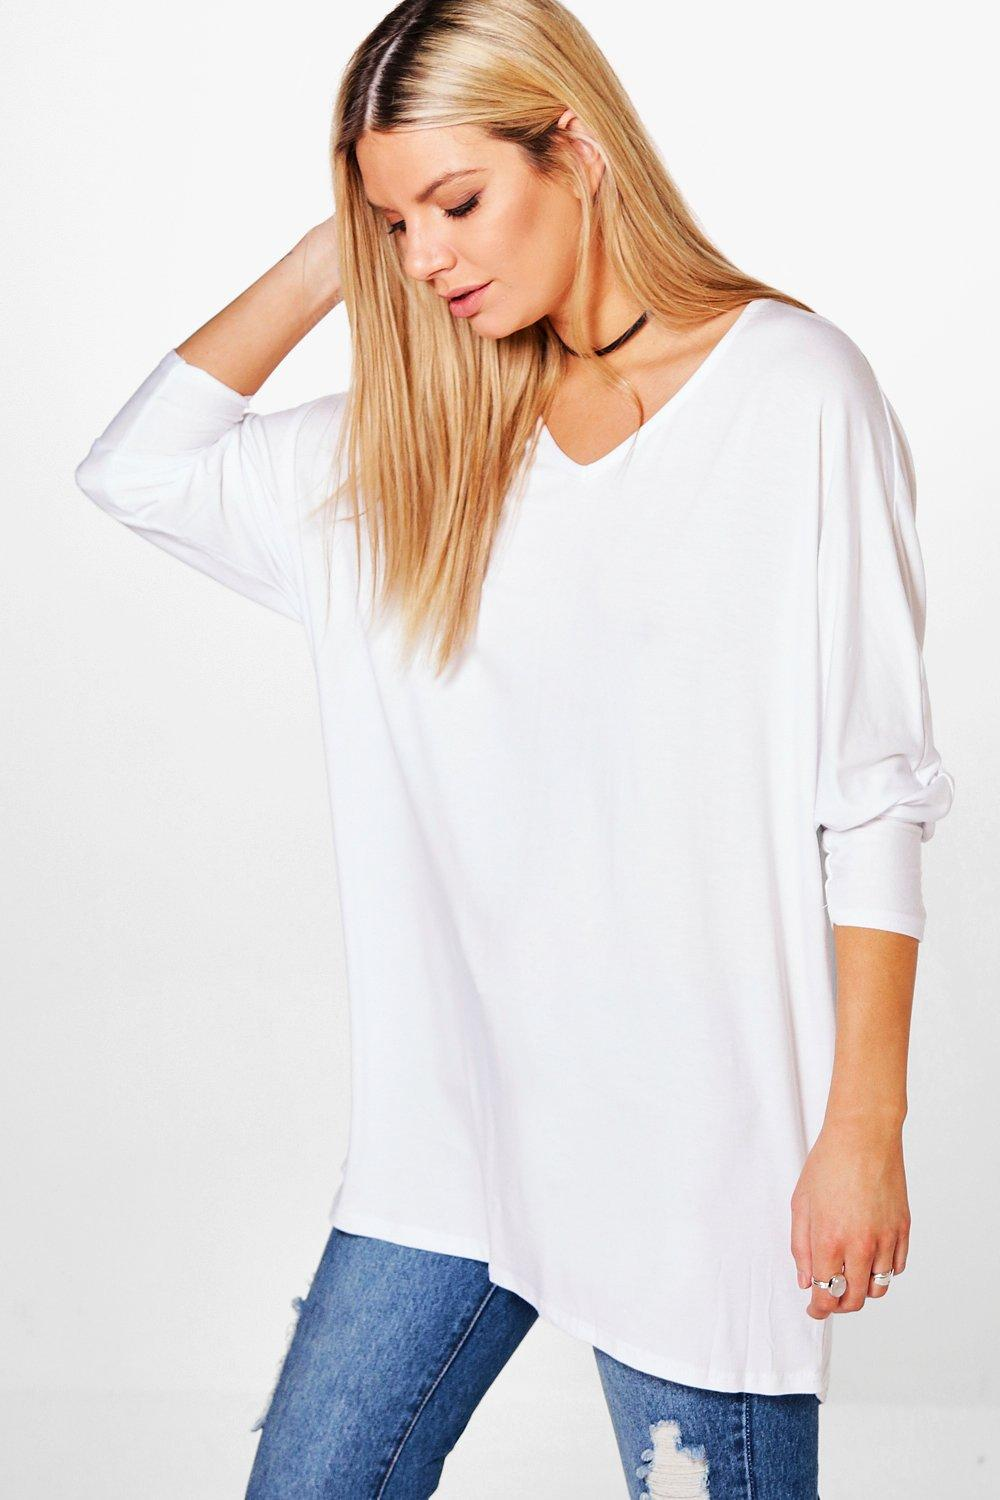 Find high quality Oversized Women's T-Shirts at CafePress. Shop a large selection of custom t-shirts, longsleeves, sweatshirts, tanks and more. TOP. Get Exclusive Offers: Thanks. We'll keep you posted! You're set for email updates from CafePress. Check your Inbox for .